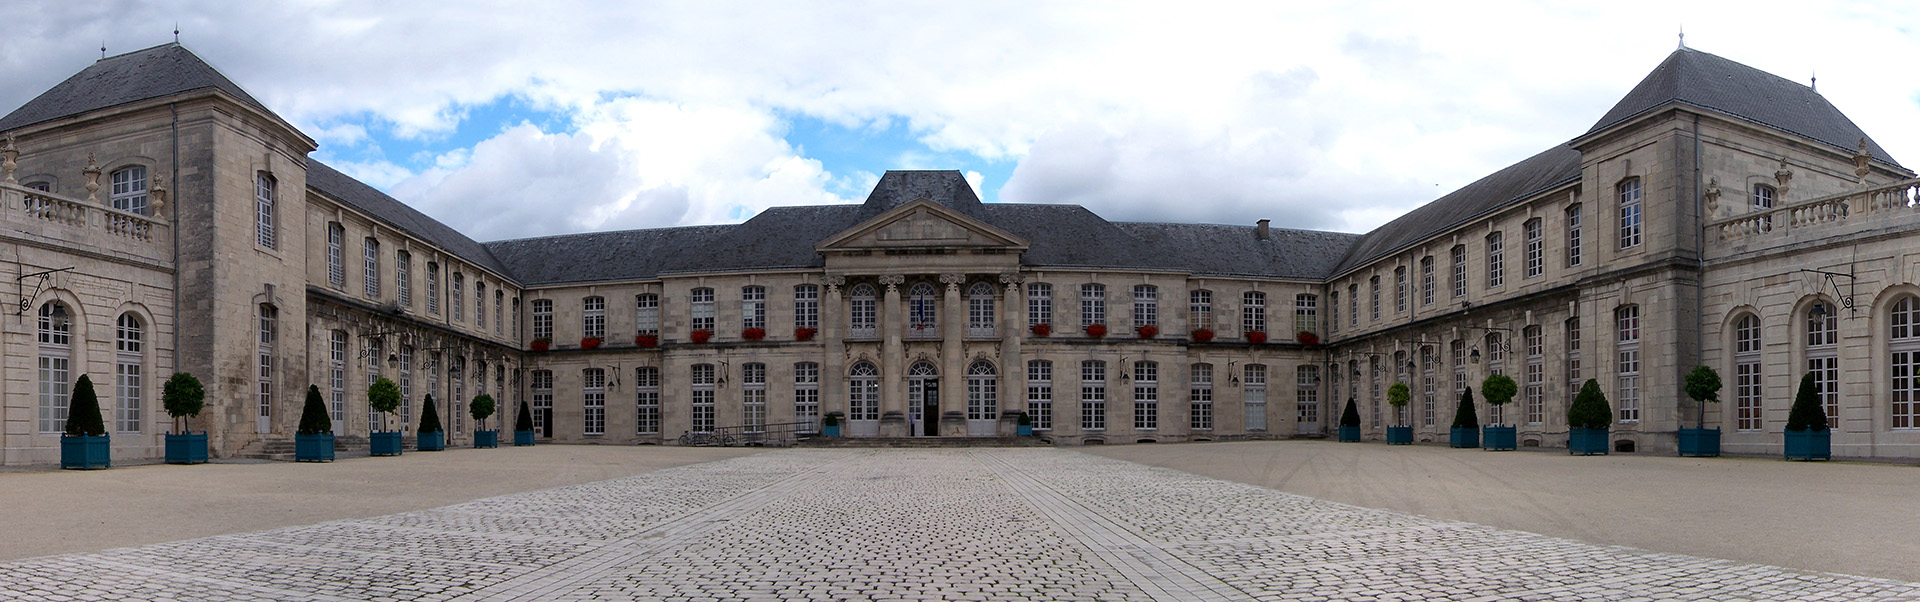 Commercy Château 1